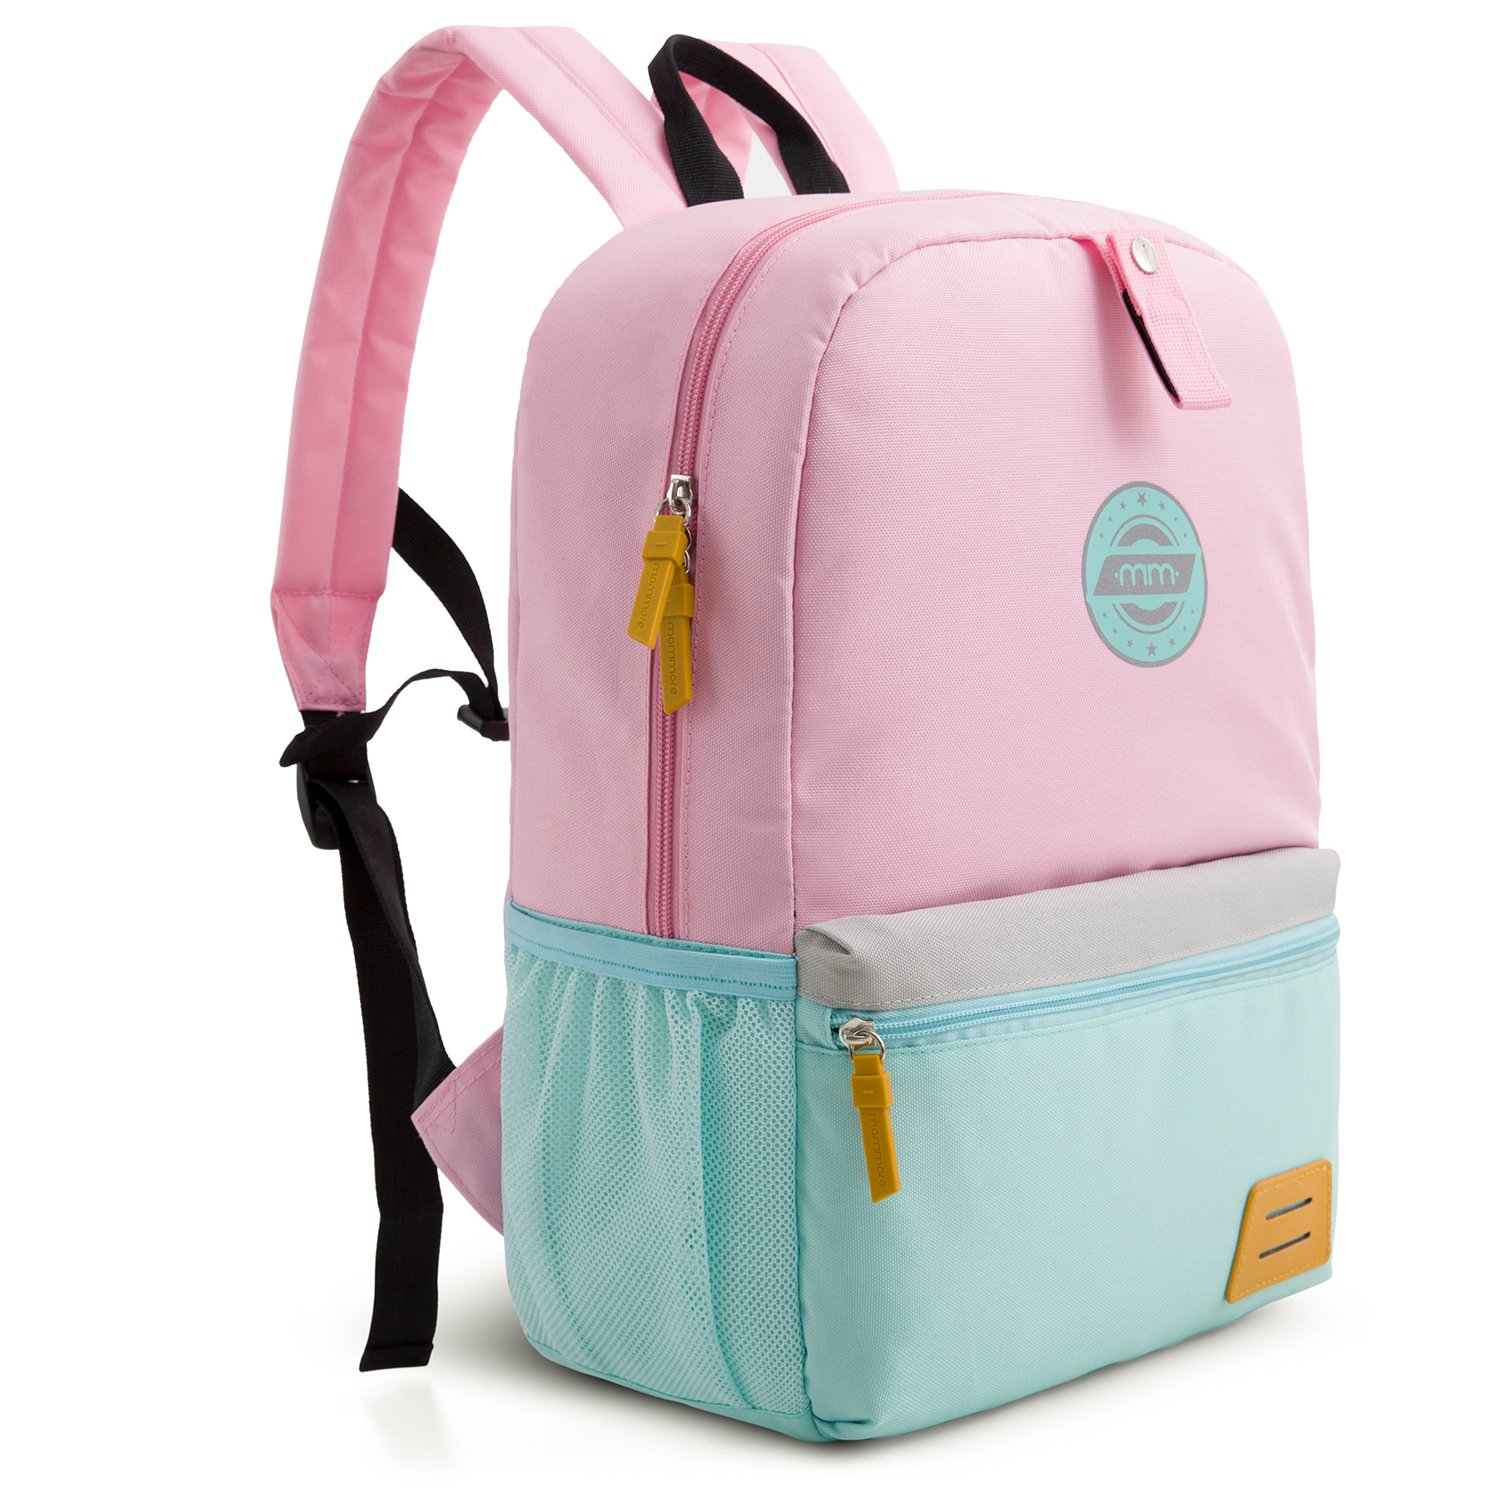 mommore Large Size Kids Backpack for School Lunch Bag Chest Clip for 4-7 Years Old, Pink by mommore